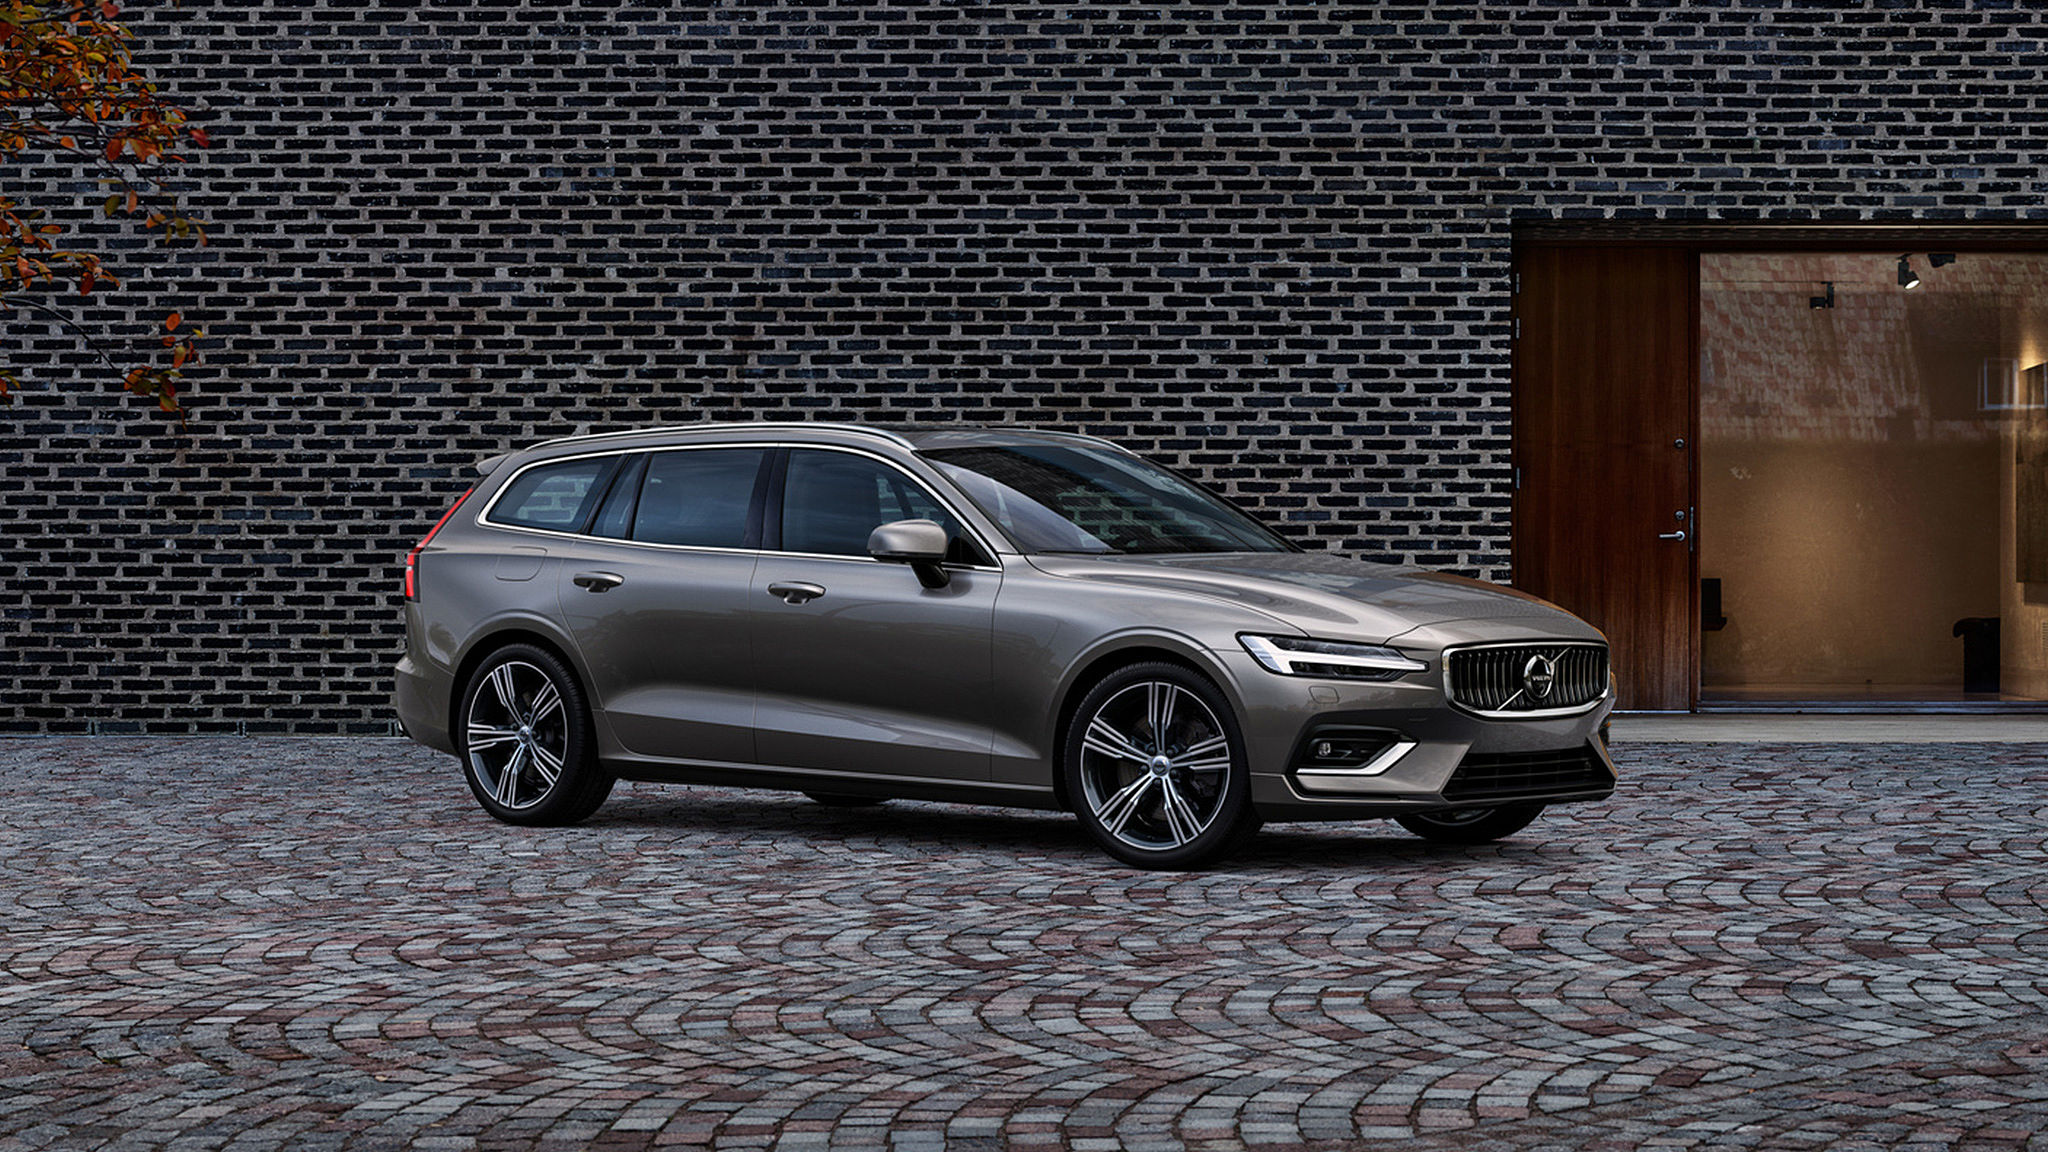 V60 AVAILABLE WITH £1,250 FINANCE DEPOSIT CONTRIBUTION, TWO COMPLIMENTARY SERVICES AND 10.9% APR REPRESENTATIVE